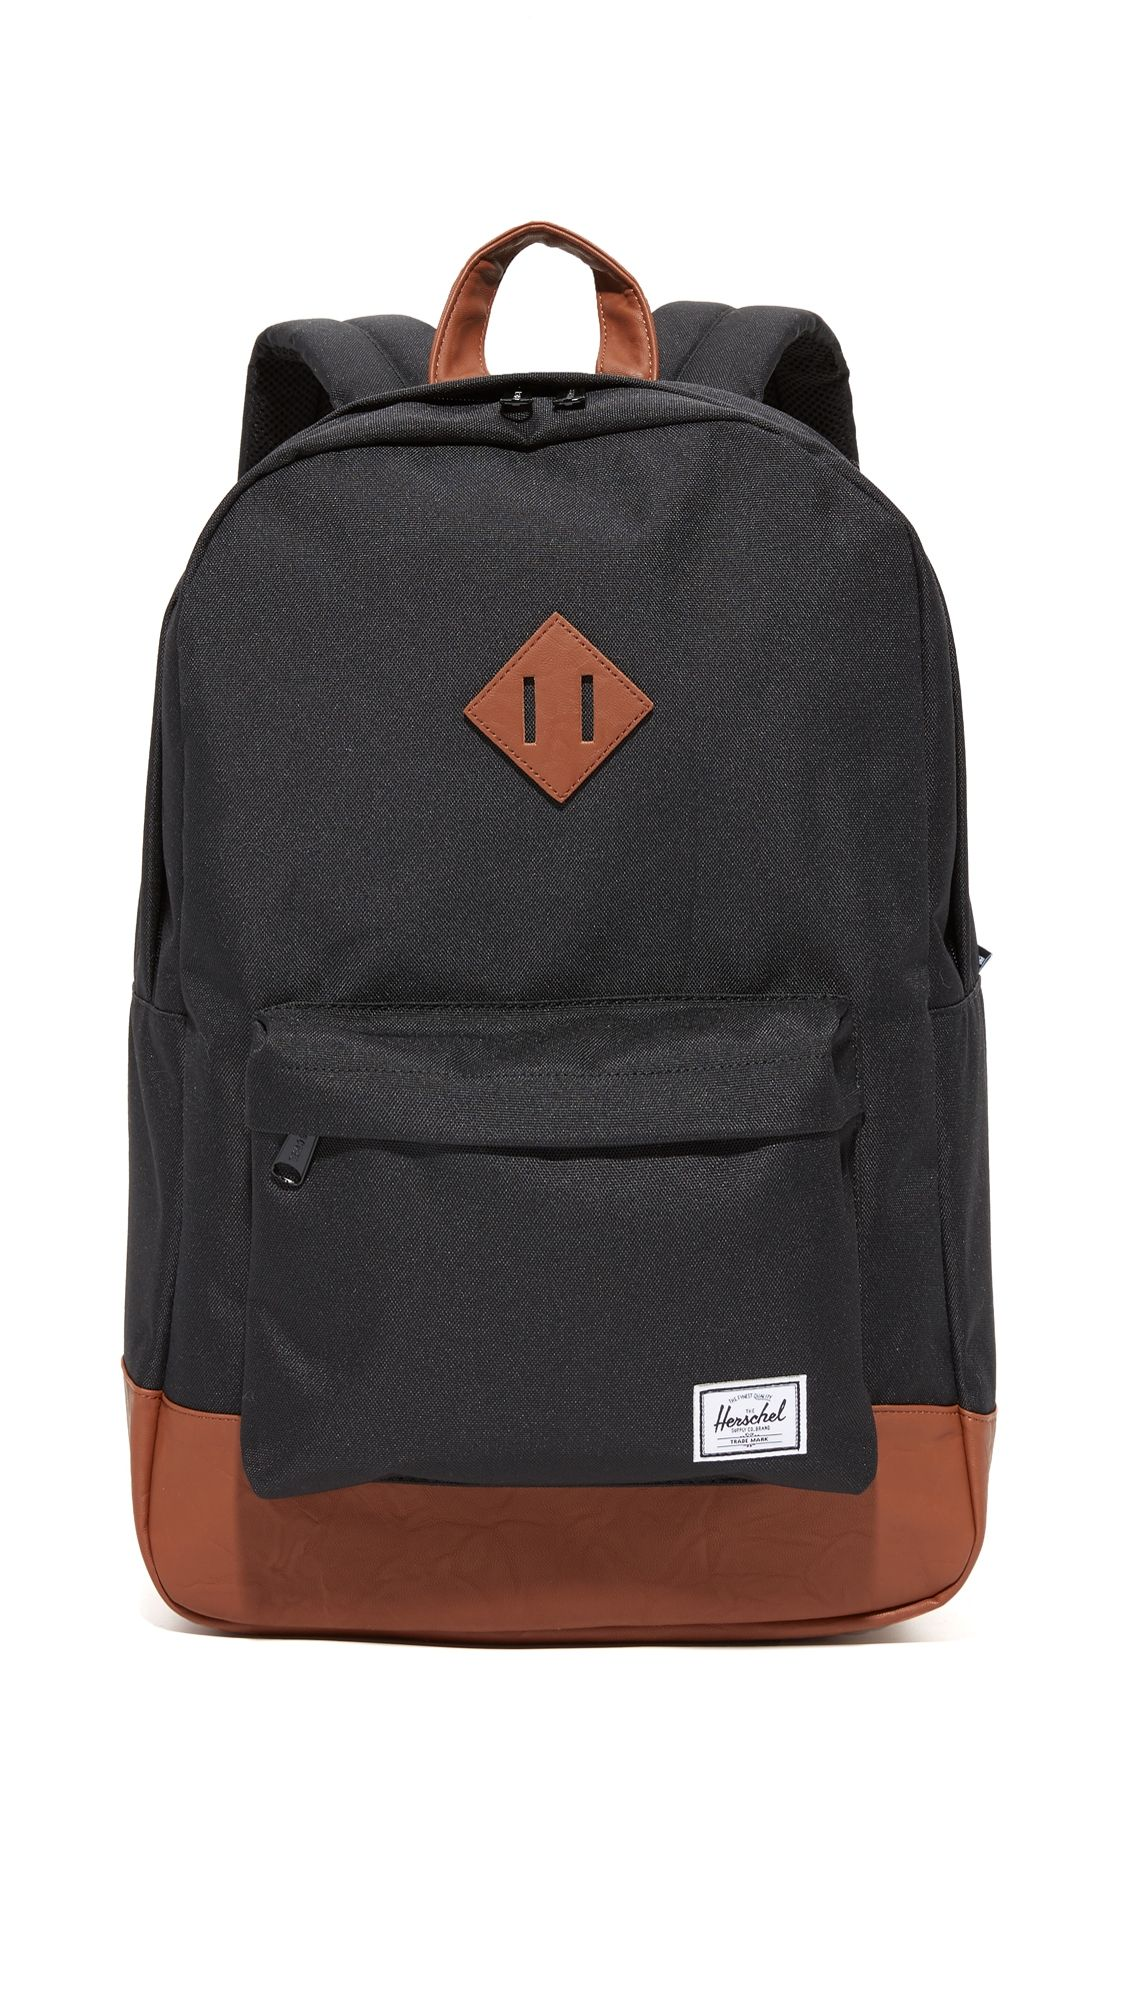 913d8882656 Heritage Classic Backpack by Herschel Supply Co. in Black